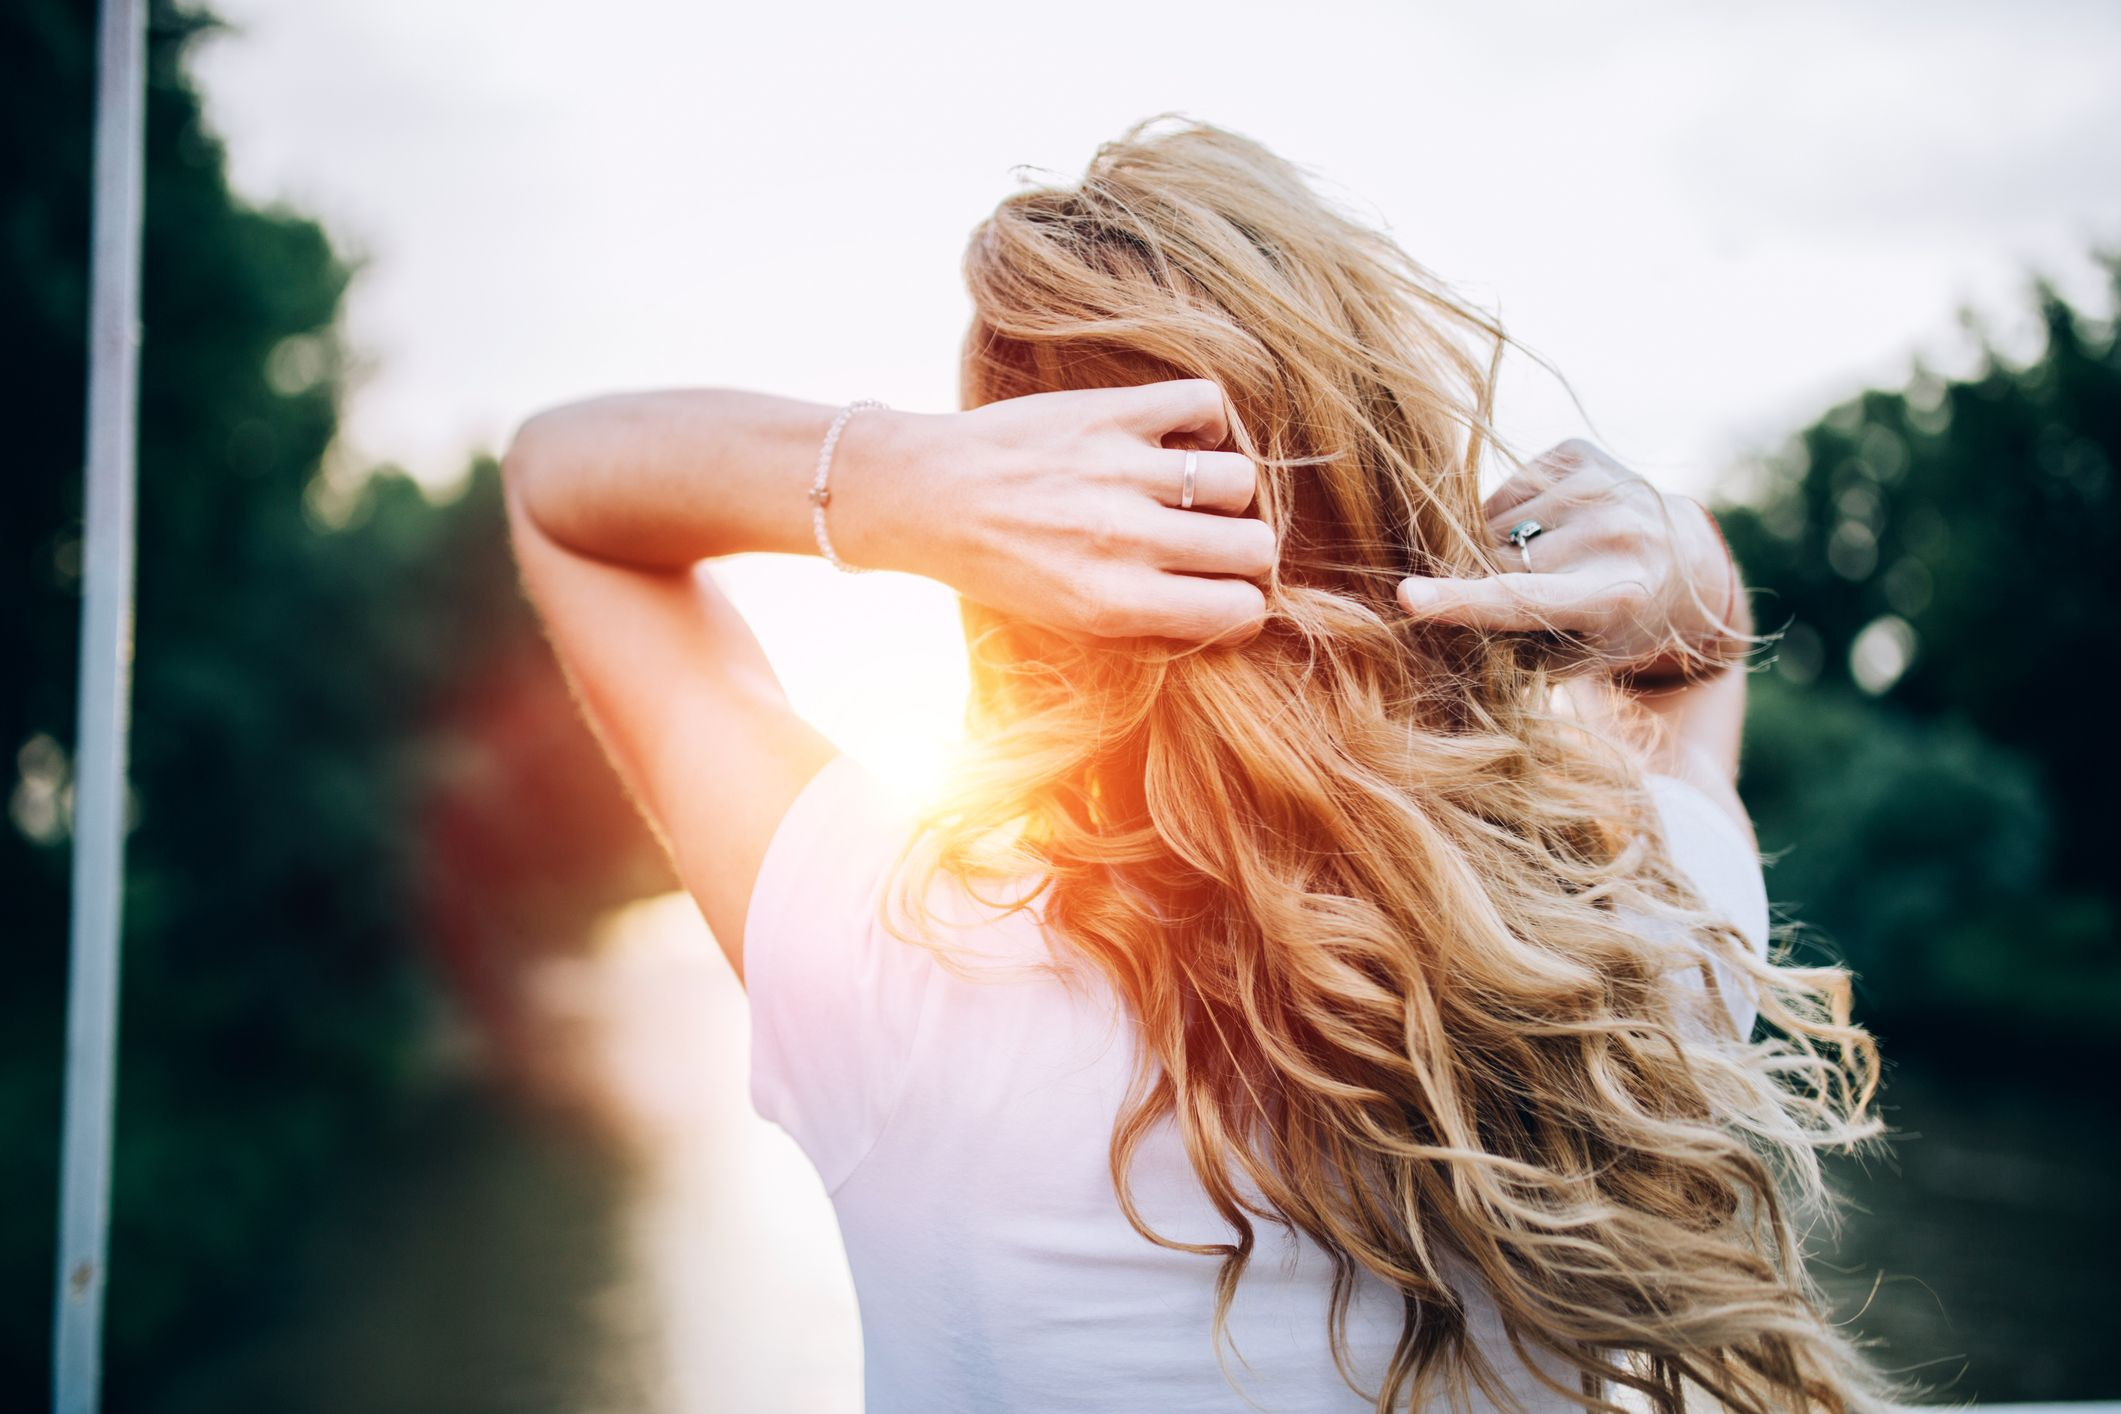 What Is Trichotillomania and How Do You Treat It?